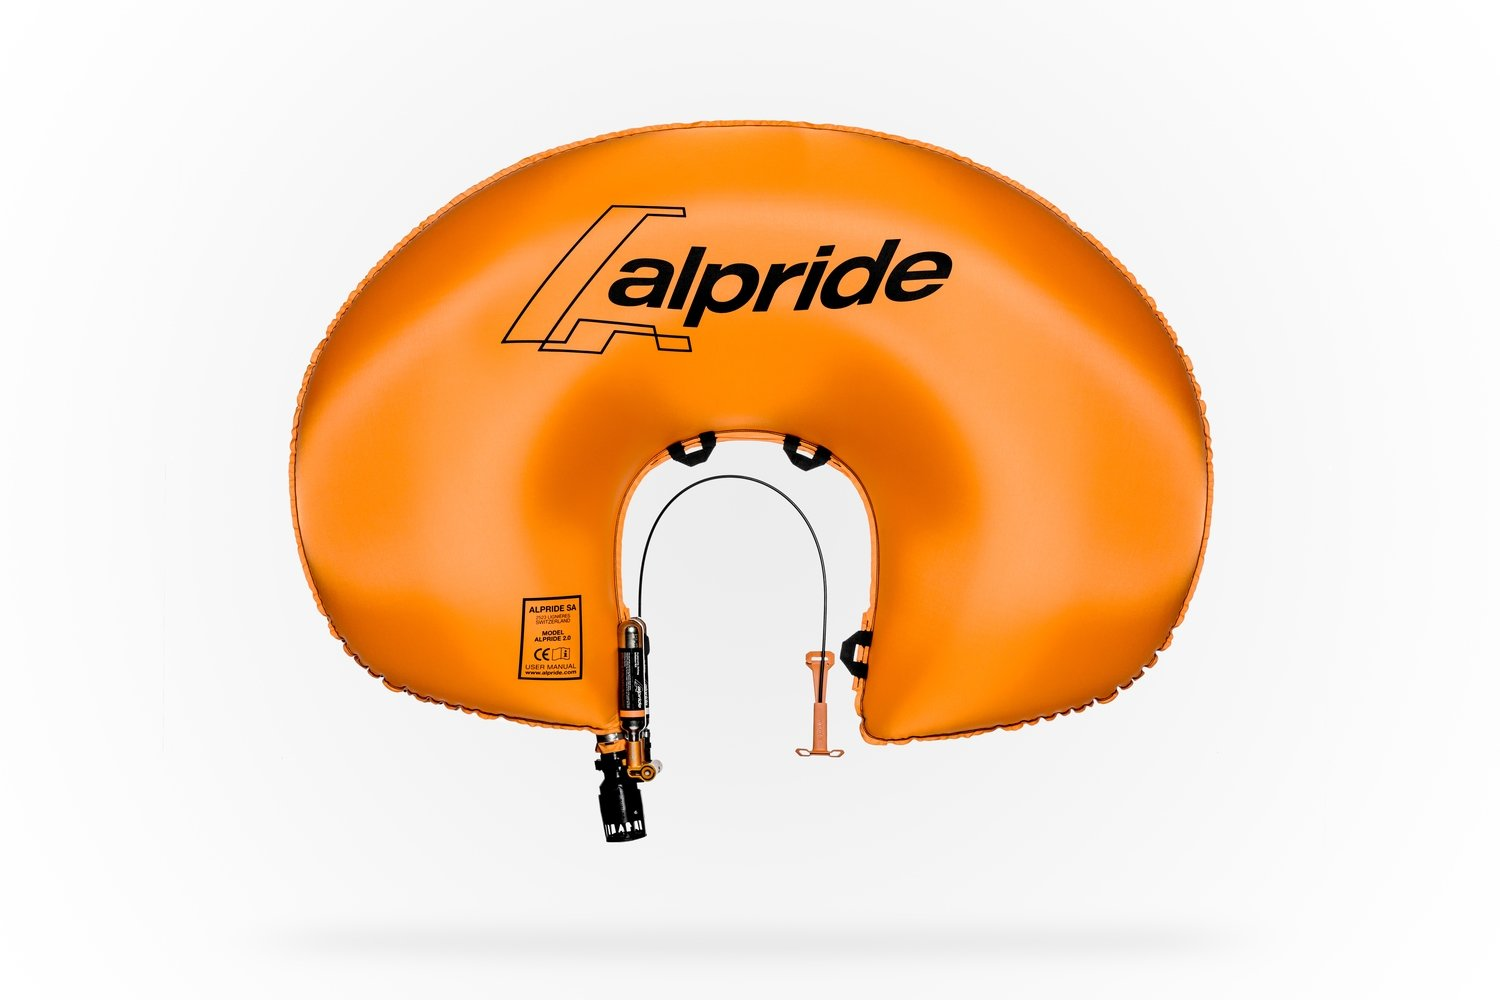 Airbag System 2.0 - In Stock